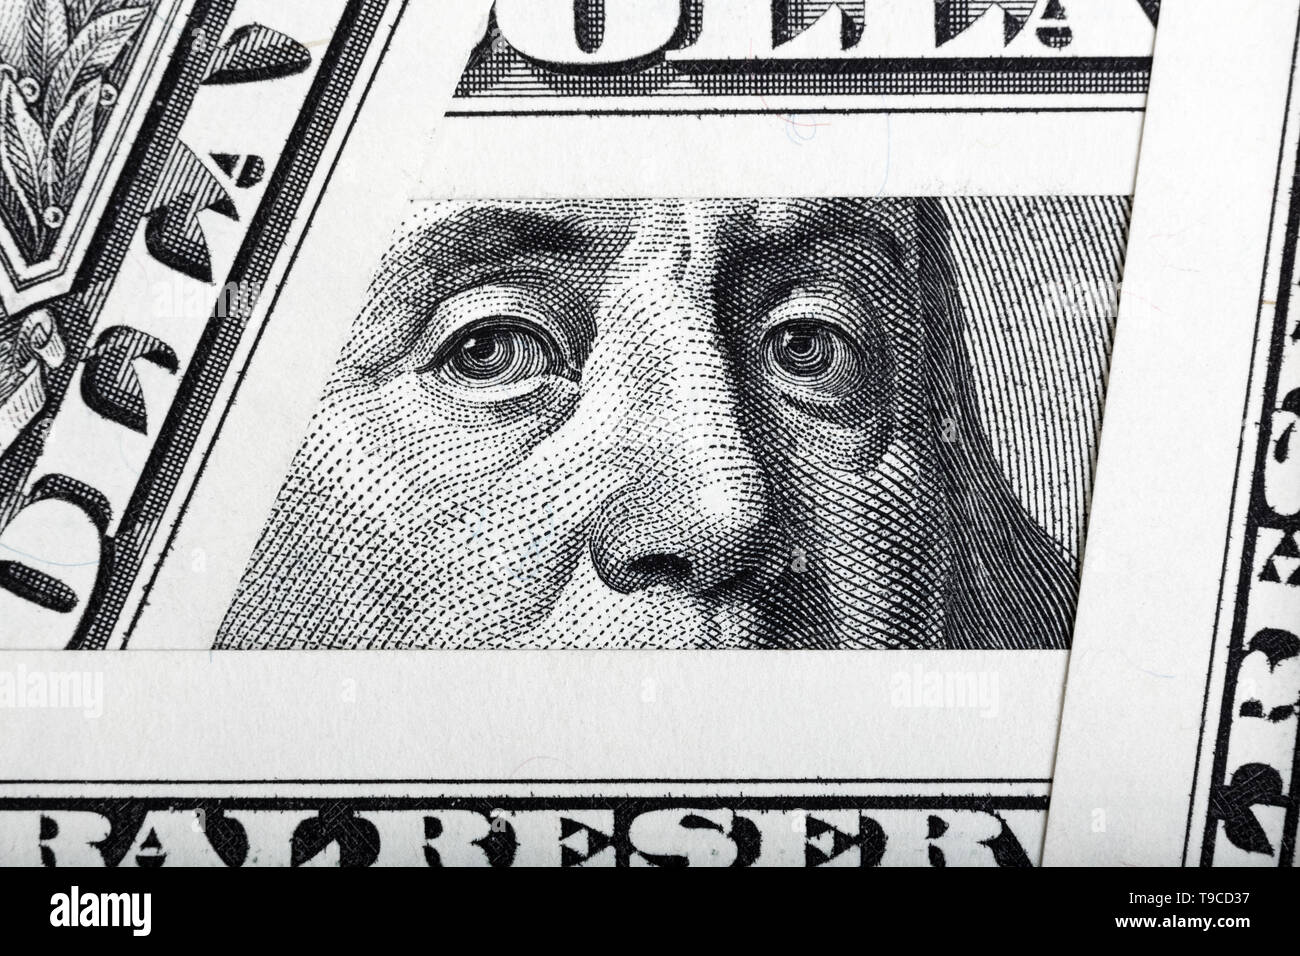 Benjamin Franklin on the one hundred dollar bill framed by one dollar banknotes. - Stock Image